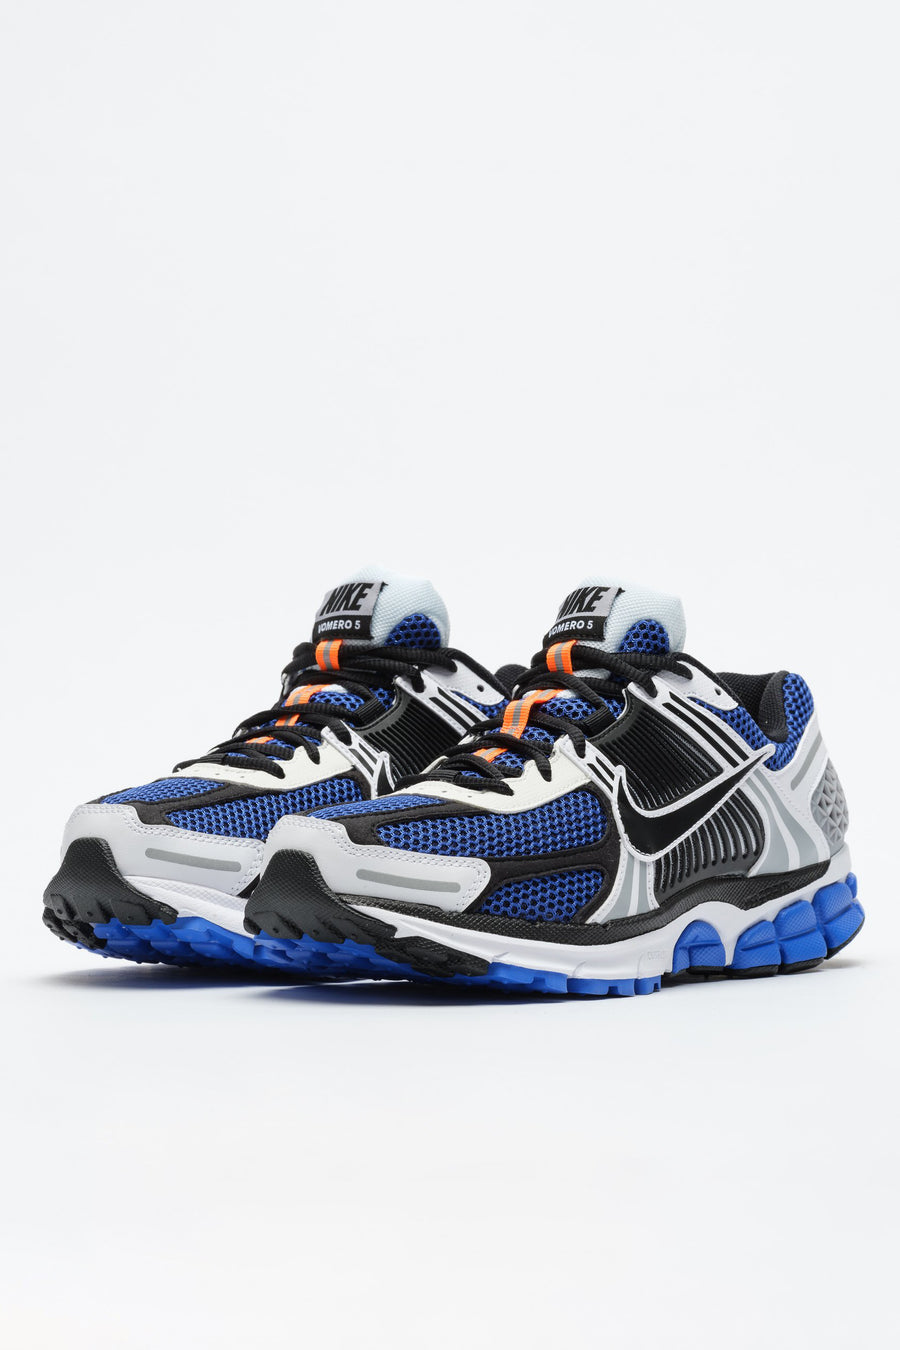 Nike Zoom Vomero 5 SE SP in White/Racer Blue - Notre